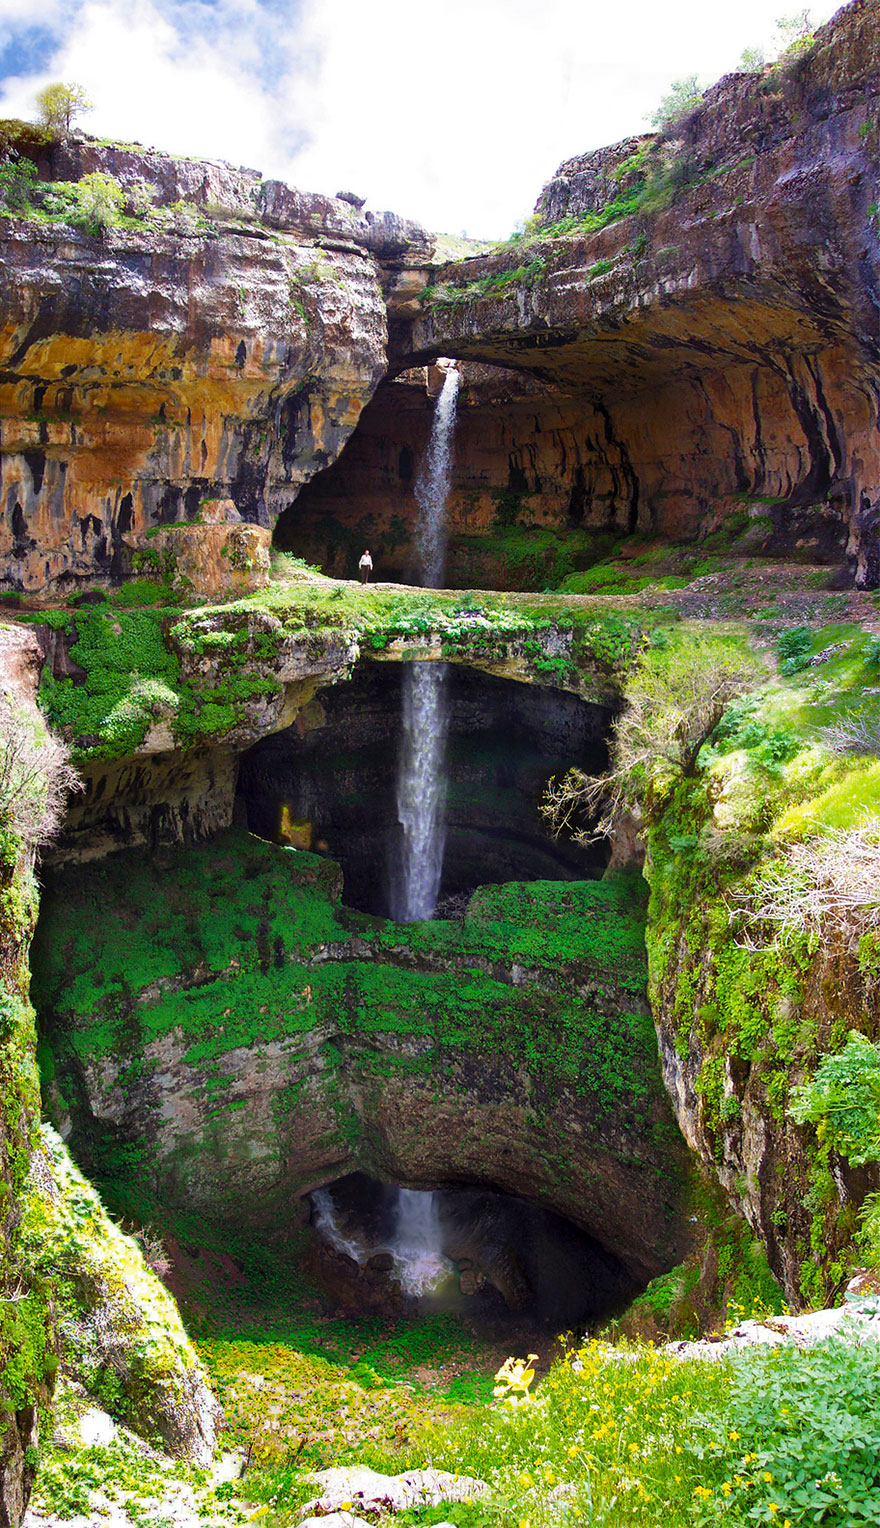 14095575134217 three bridges cave baatara gorge waterfall lebanon 13 This wonder of nature deserves respect..and ofcourse some adulation!!